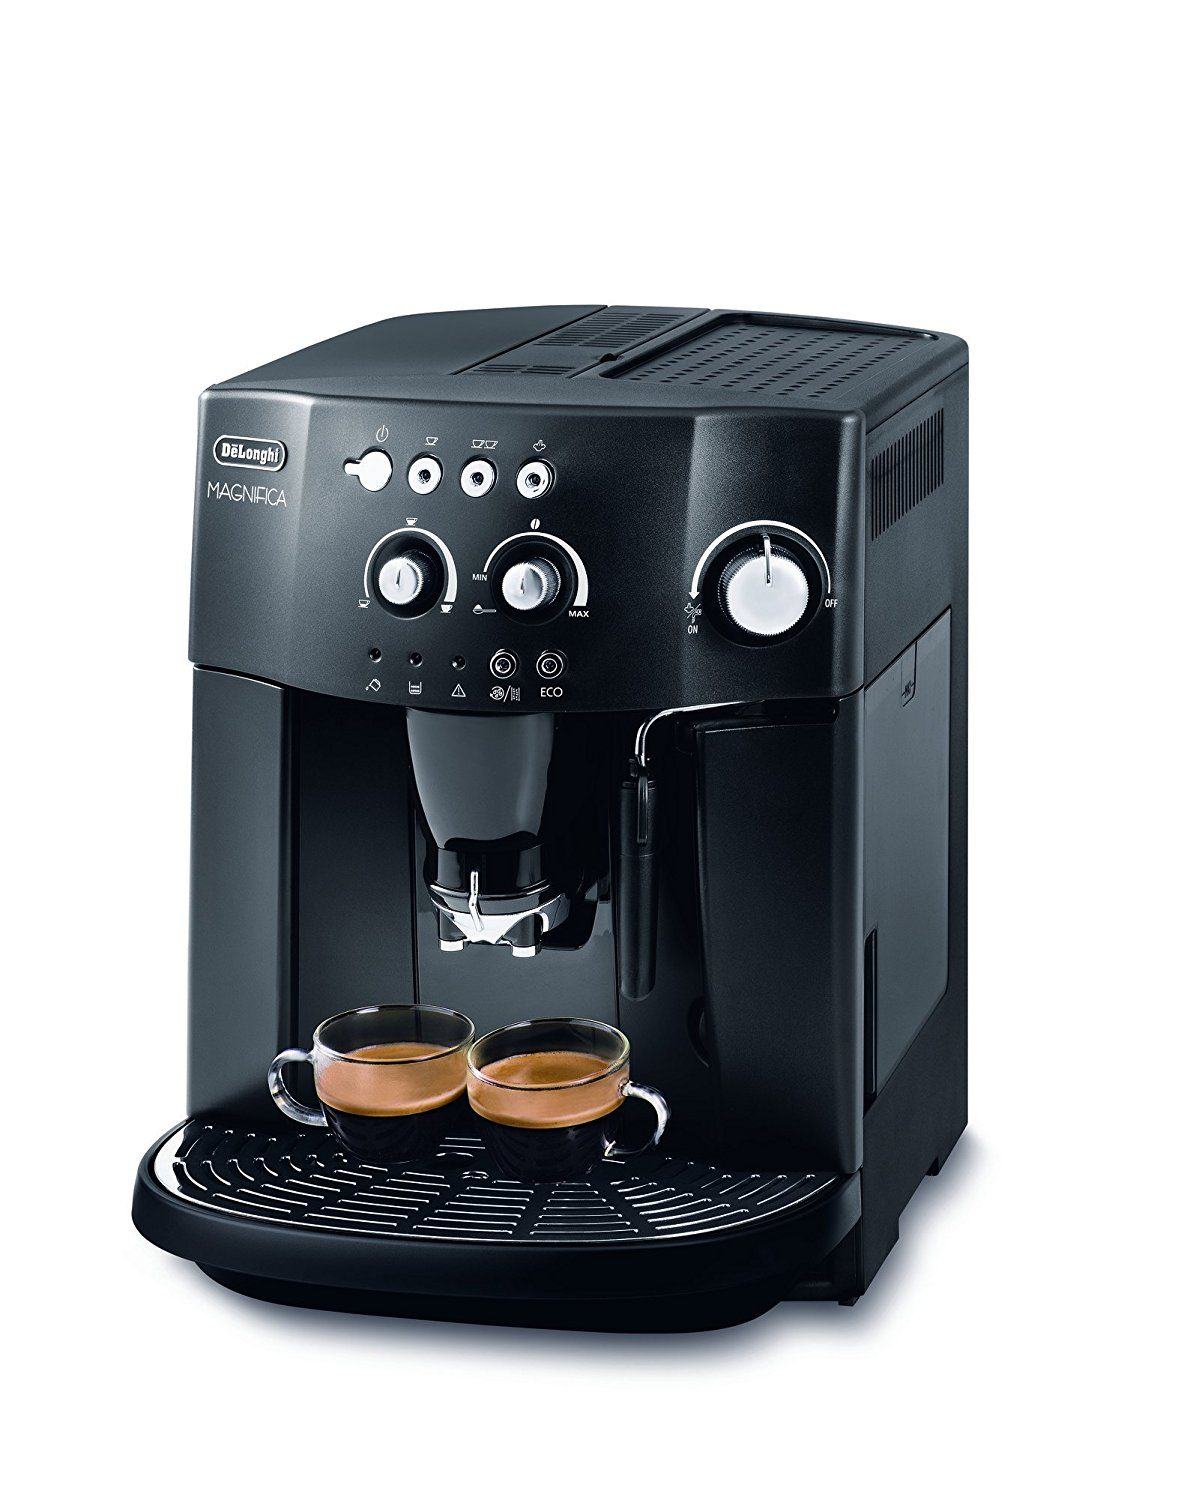 de 39 longhi magnifica esam4200 coffee machine uk review the. Black Bedroom Furniture Sets. Home Design Ideas